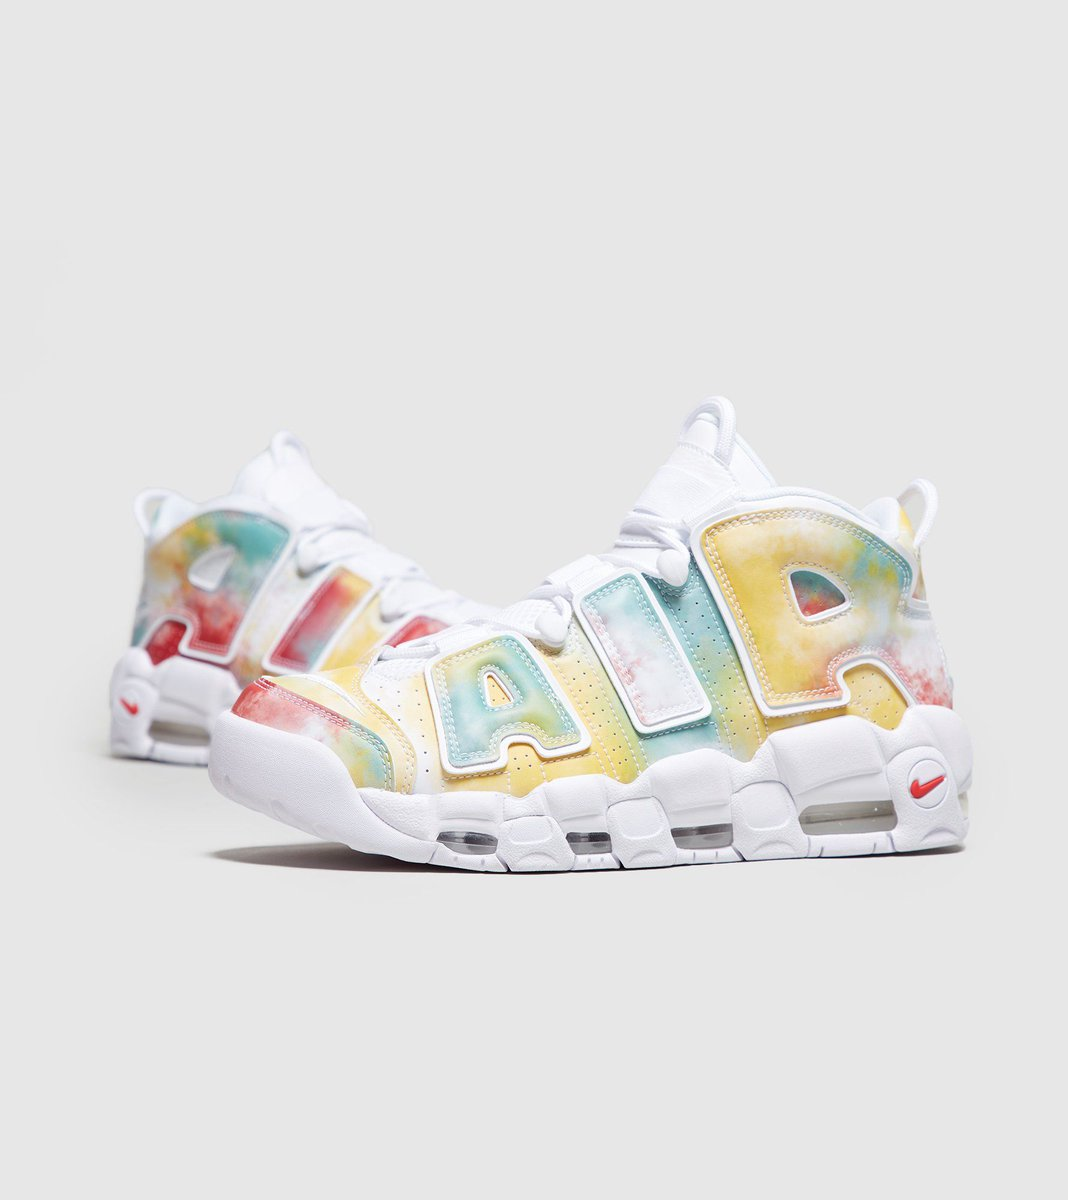 newest collection 775a1 515ea Nike Air More Uptempo 96  International  Pack now live early on SIZE   United Kingdom http   tidd.ly c3e6553 Italy http   tidd.ly 868479b  pic.twitter.com  ...